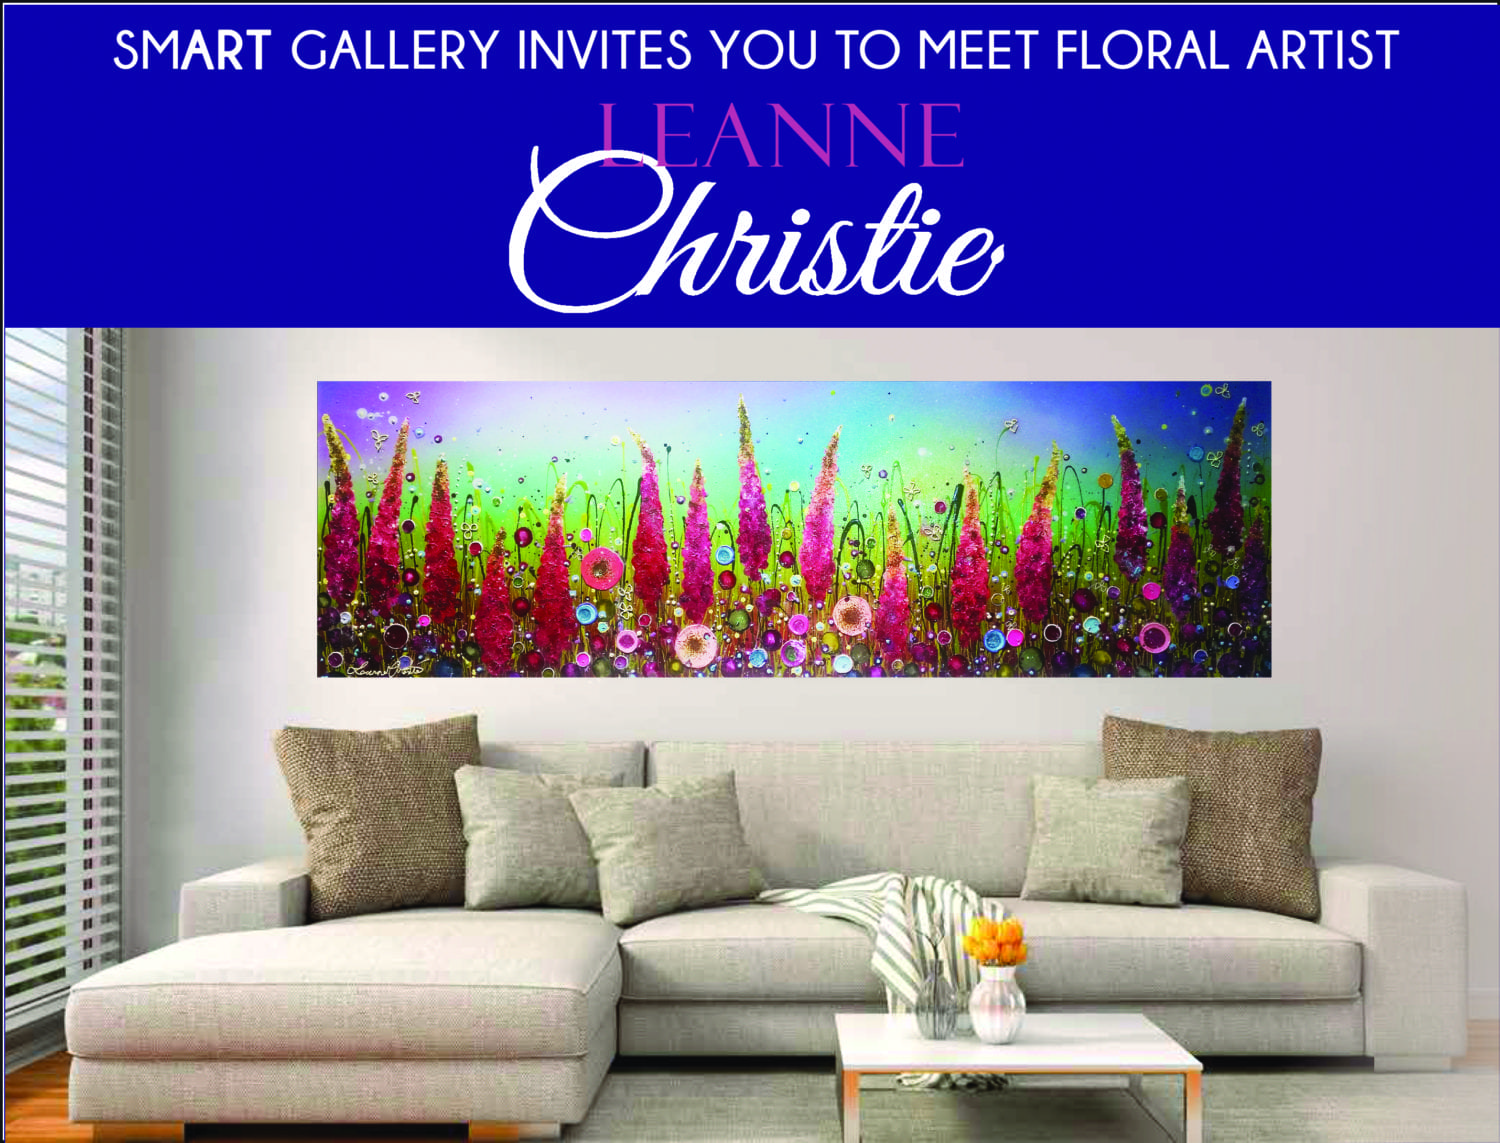 Leanne Christie Exhibition & Gallery Re-Launch – Sunday 18th September